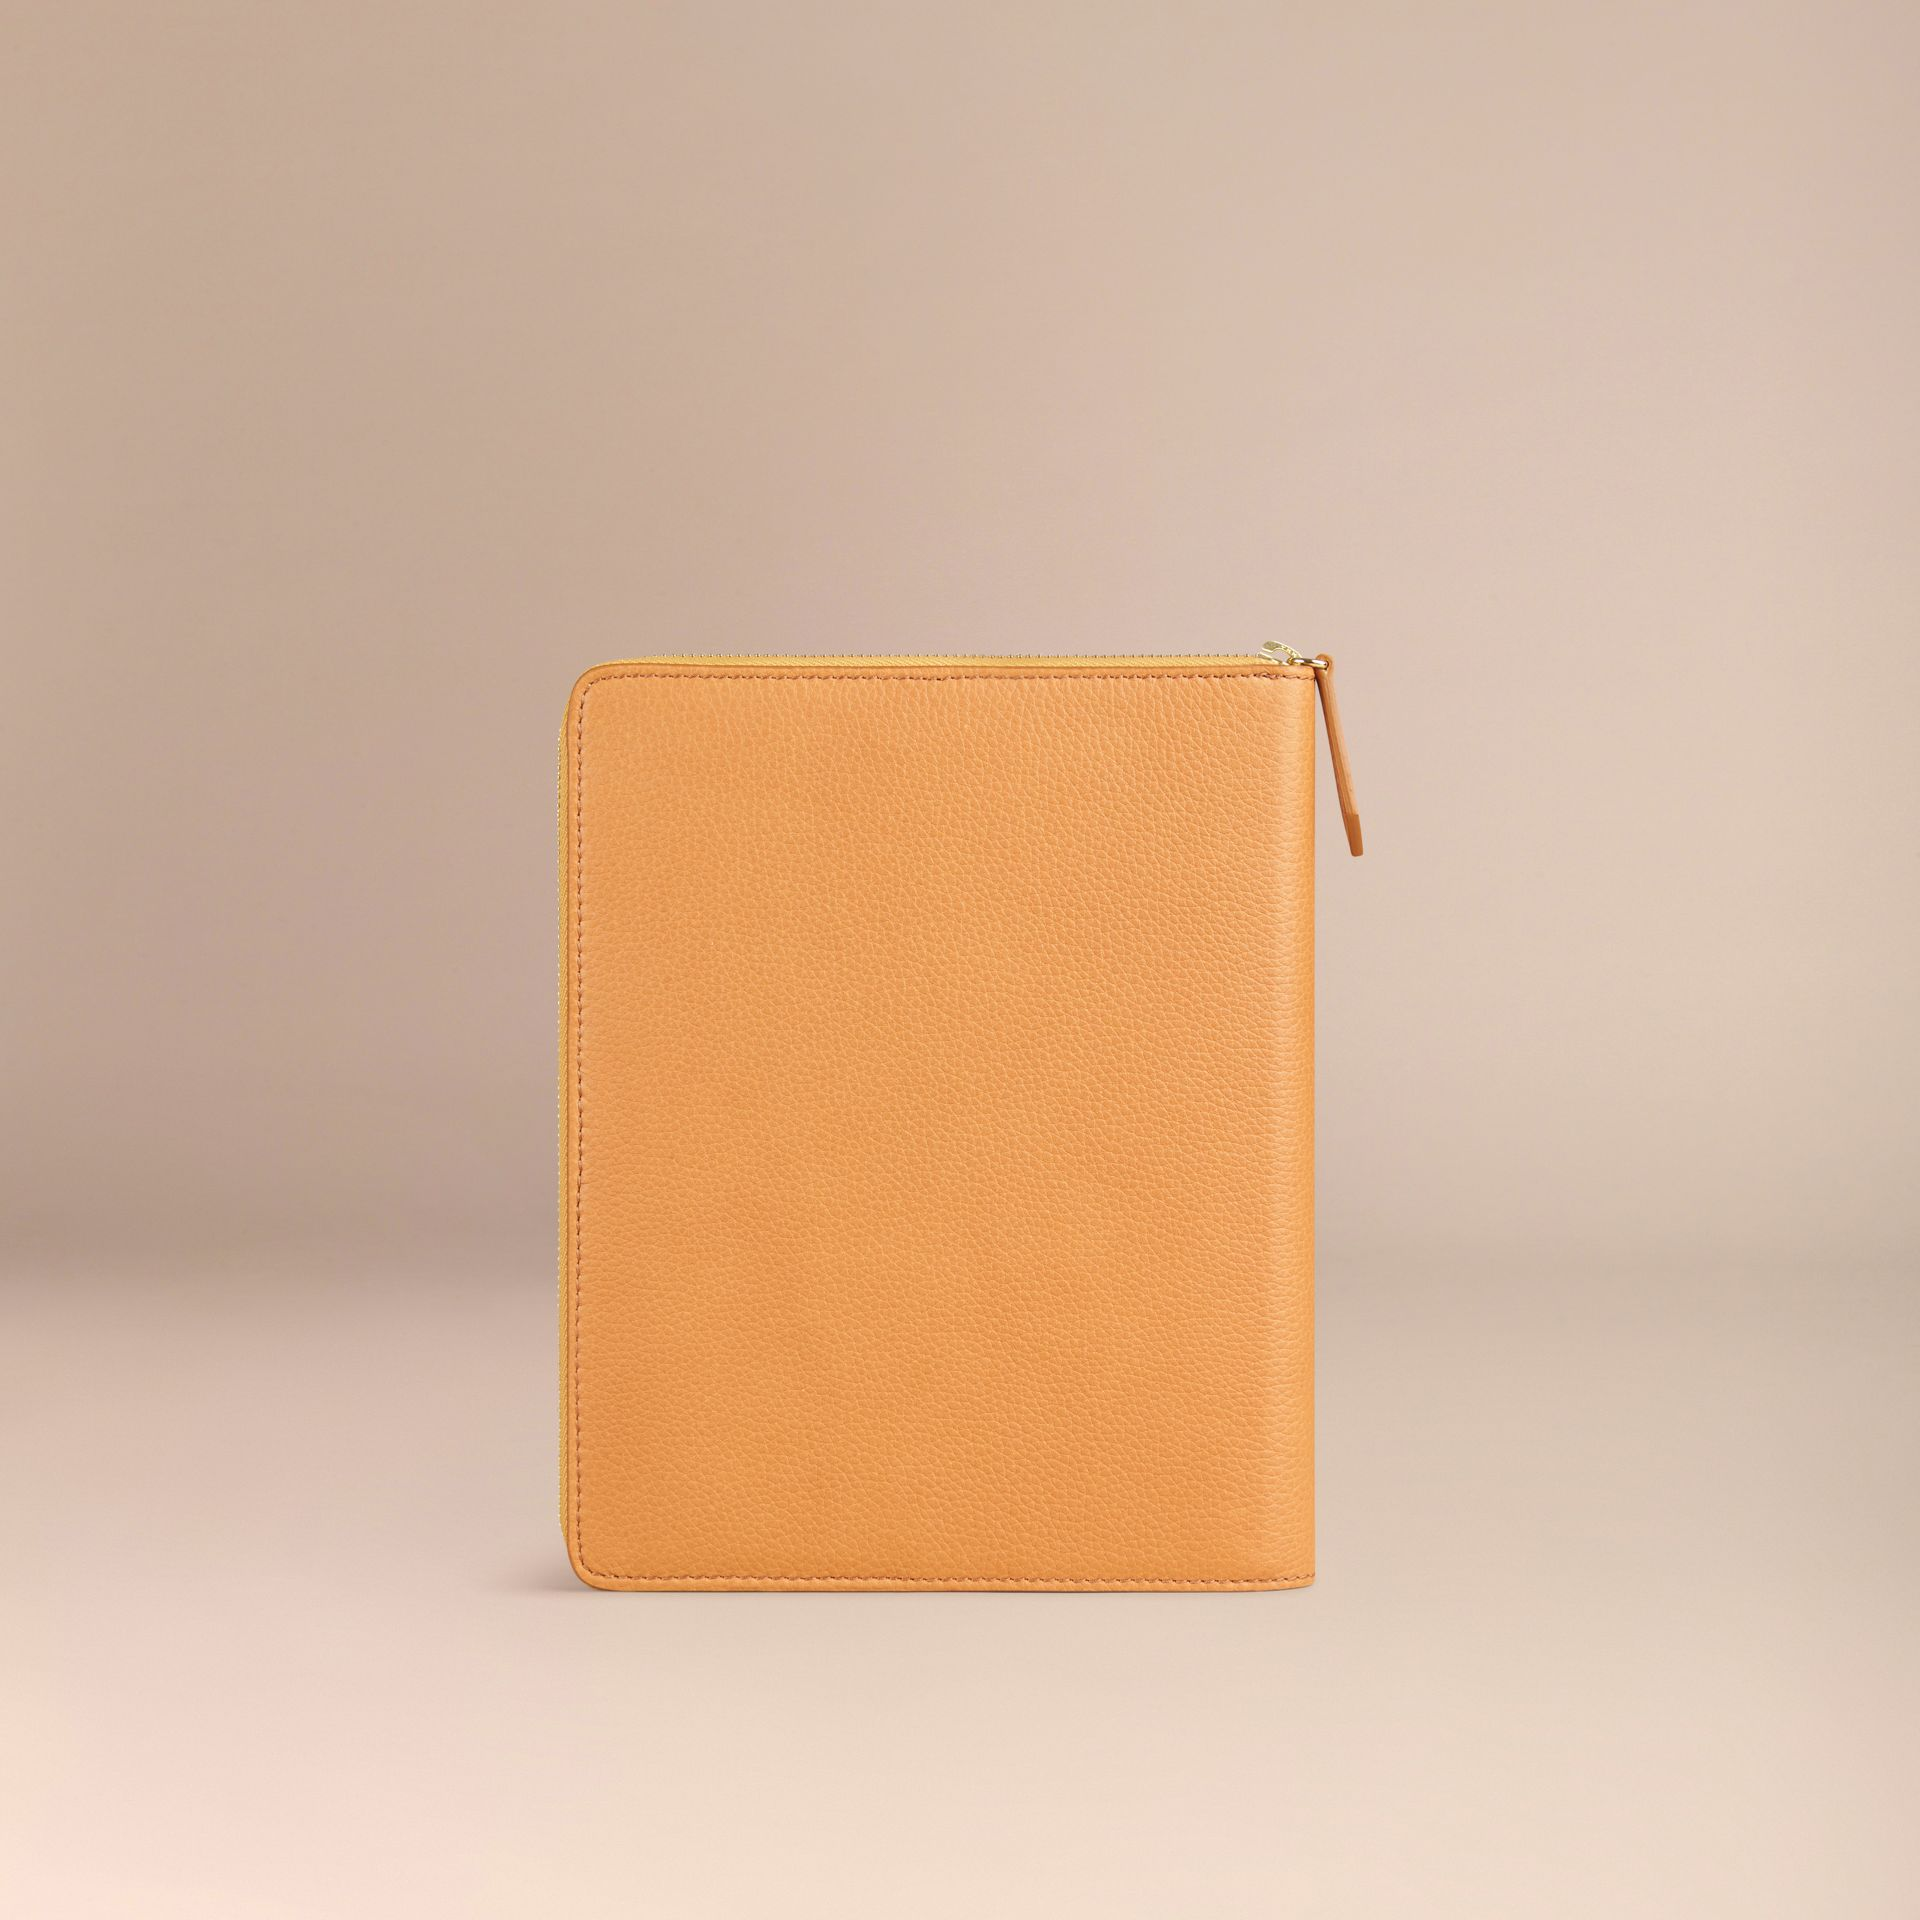 Ochre yellow Ziparound Grainy Leather 18 Month 2016/17 A5 Diary Ochre Yellow - gallery image 3